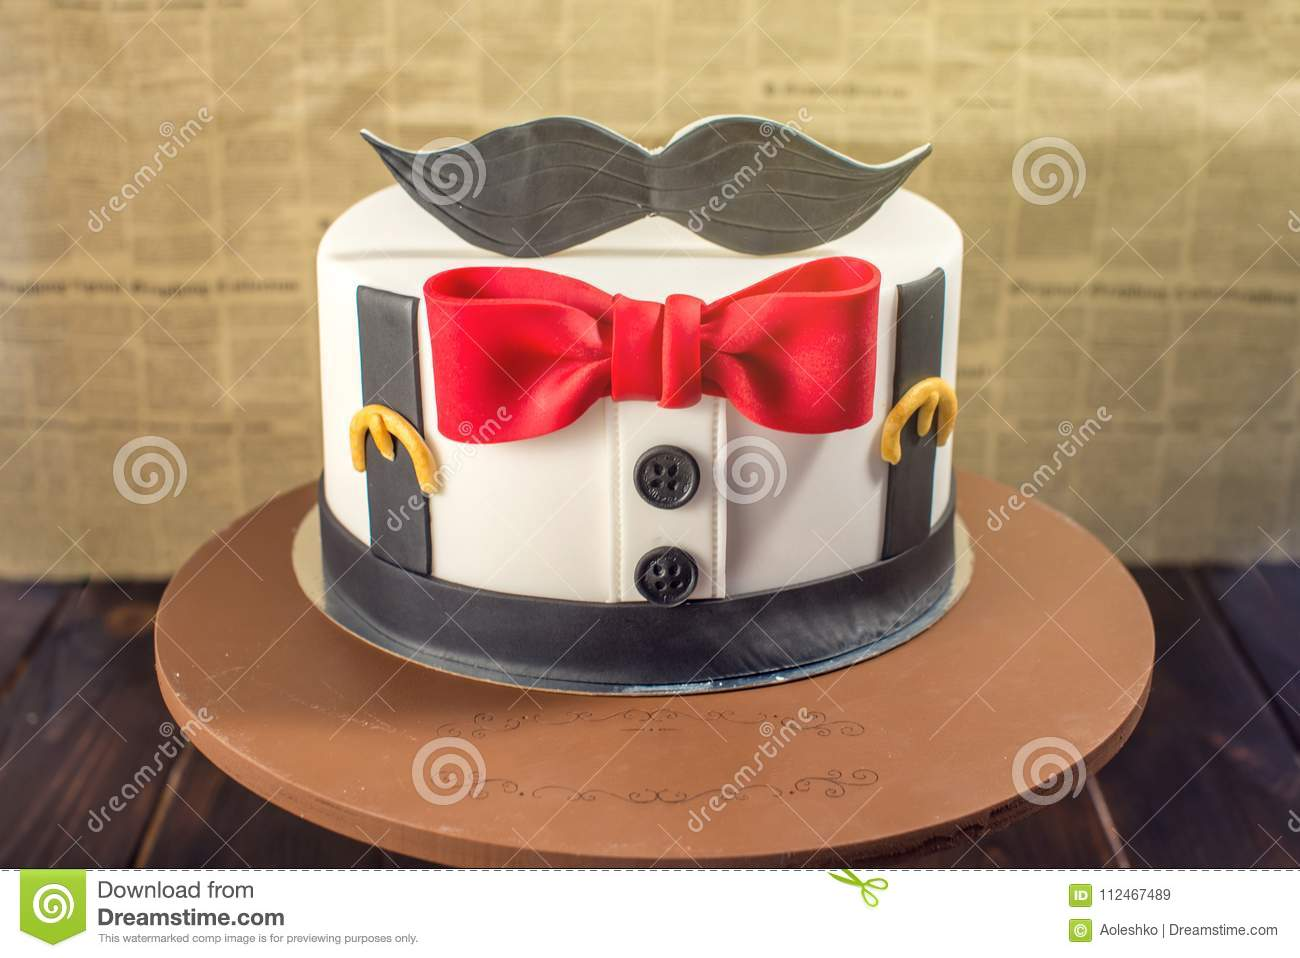 Beautiful Cake For Men Decorated In The Form Of A Suit With Bow Tie Concept Desserts Birthday Boy